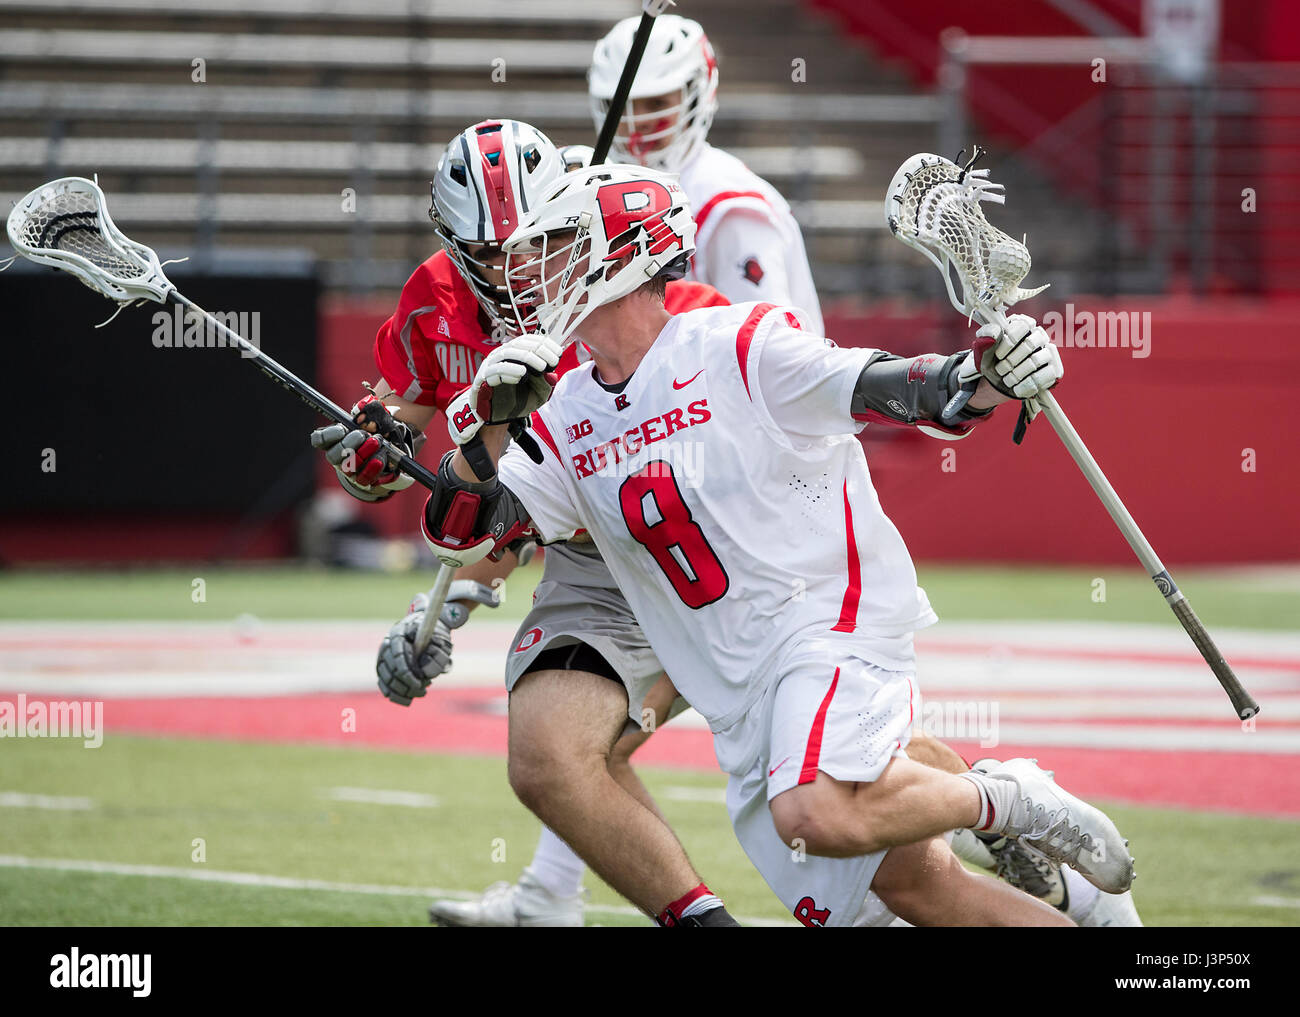 Lacrosse match between Ohio State and Rutgers at High Point Solutions Stadium in Piscataway, New Jersey - Stock Image